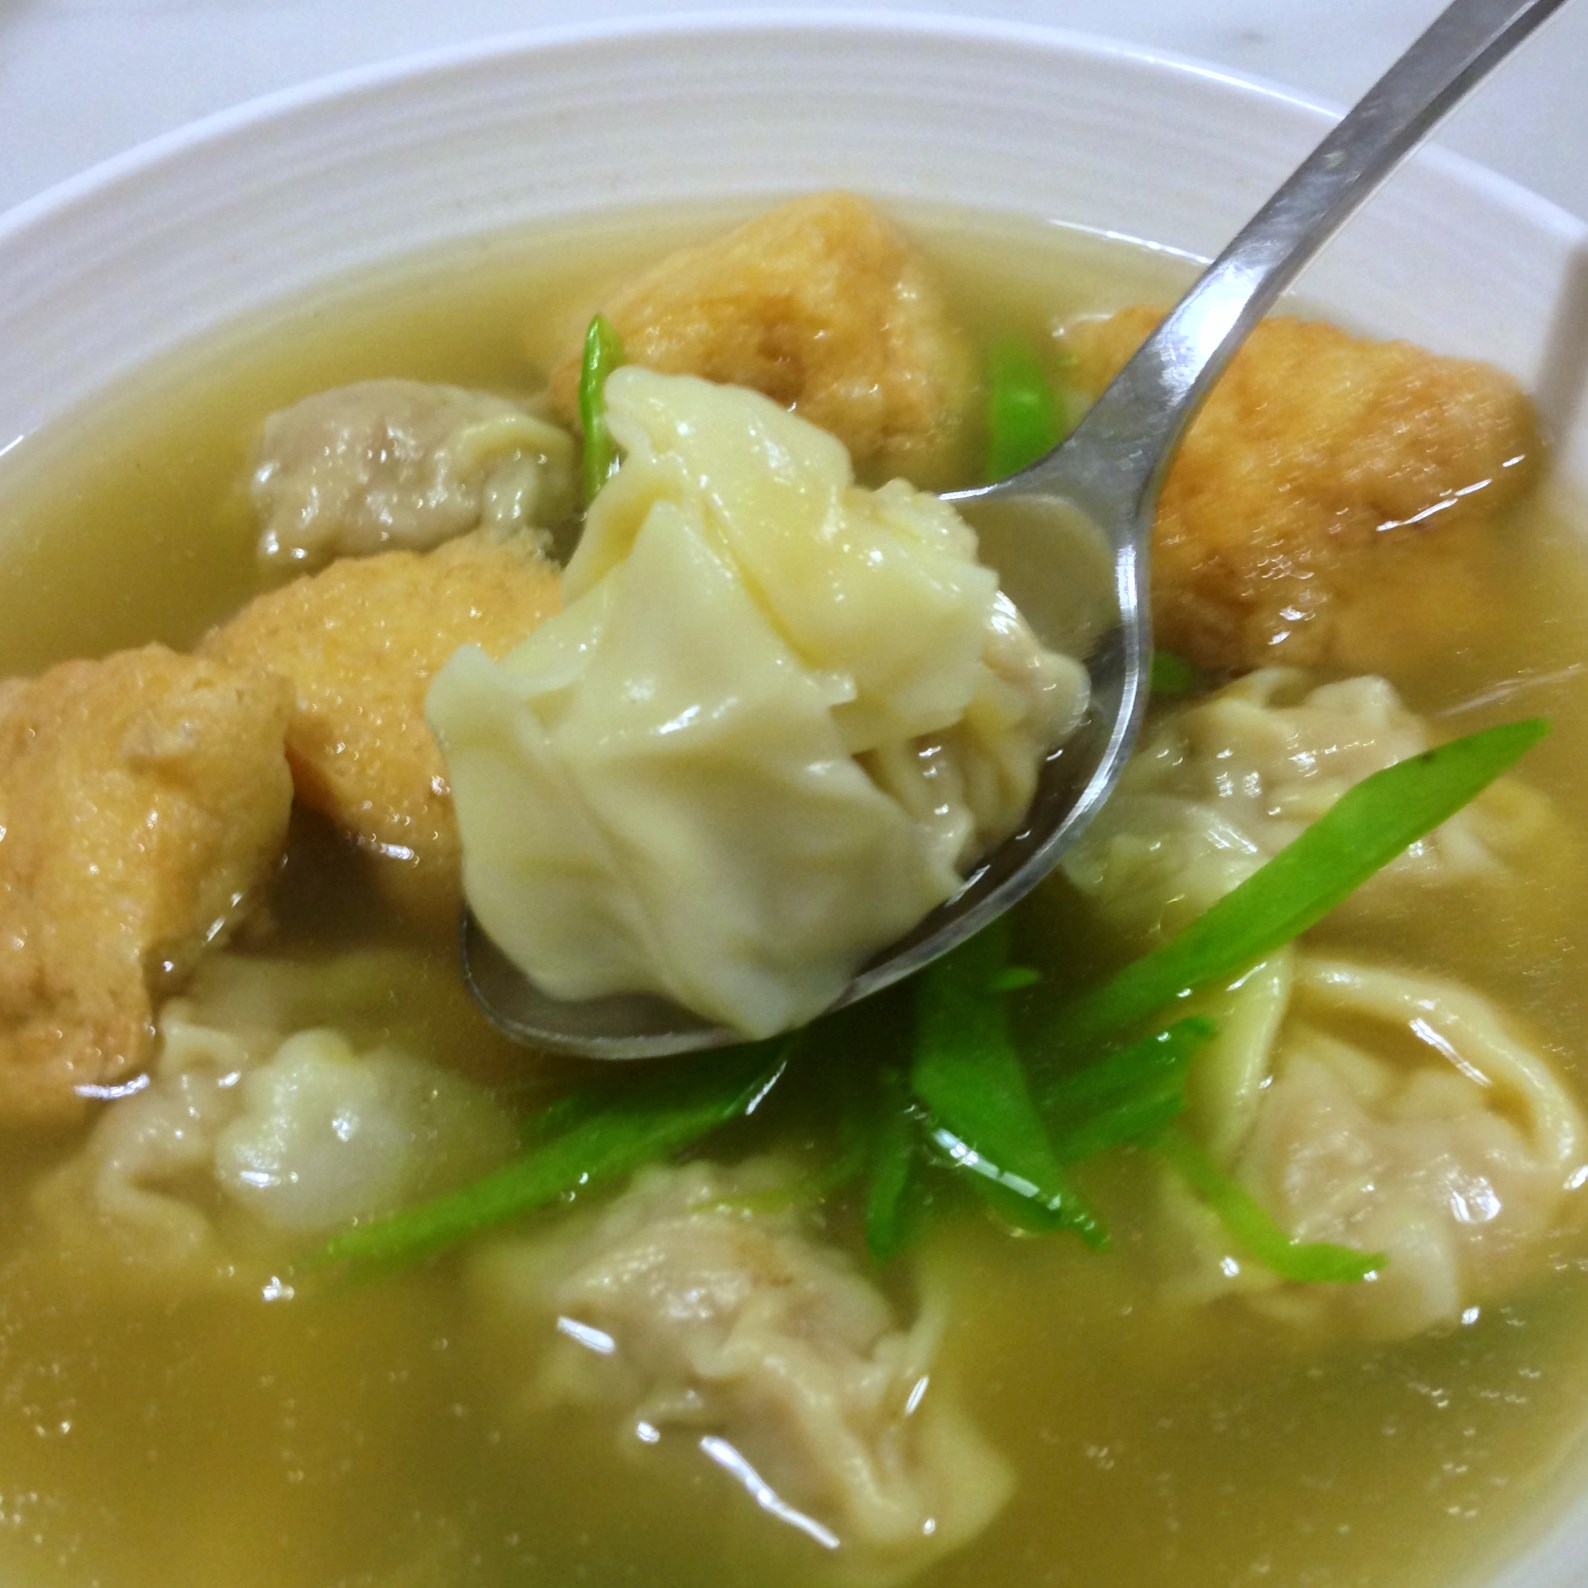 Comfort Eating At Its Best Pork Wonton Soup With Deep Fried Tofu Puffs And Shredded Snow Peas